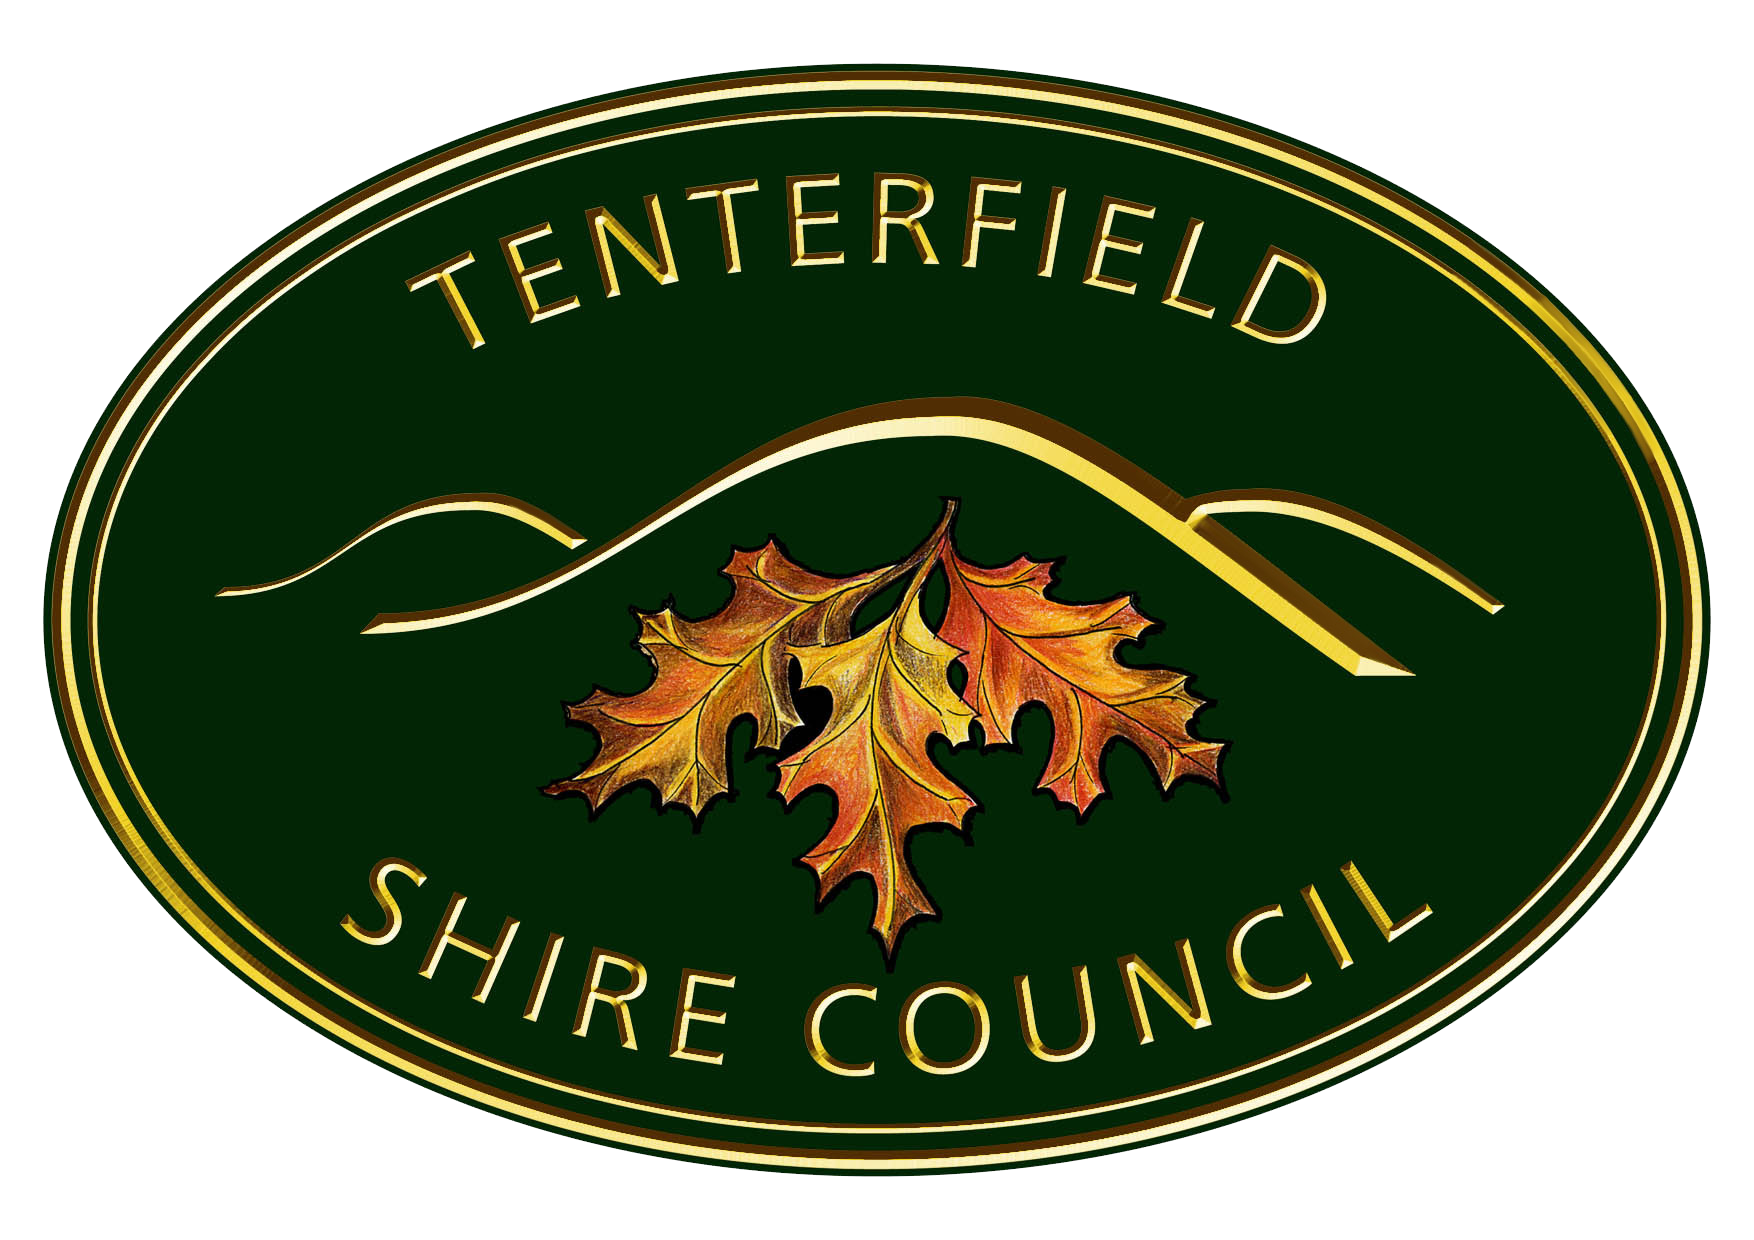 Tenterfield Shire Council Logo